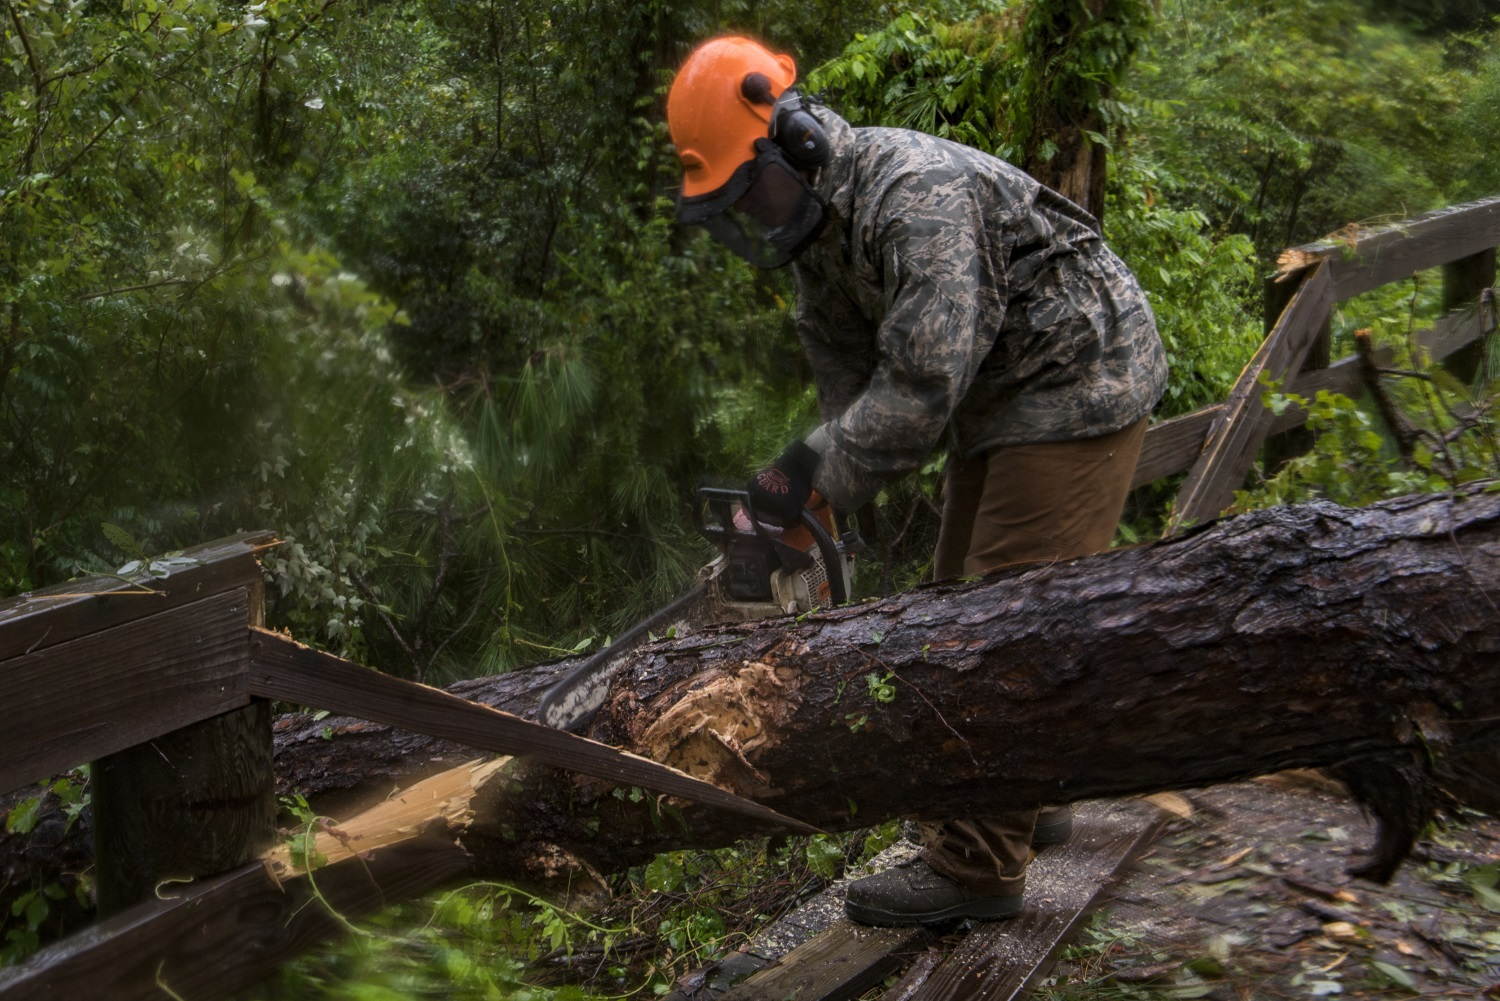 Senior Airman Justin Benito, 23rd Civil Engineer Squadron heavy equipment operator, uses a chainsaw to cut a fallen tree's trunk on Sept. 11, 2017, at Moody Air Force Base, Ga. Moody's ride-out team consisted of approximately 80 airmen who were tasked with immediately responding to mission-inhibiting damage caused by Hurricane Irma. (Airman 1st Class Daniel Snider/Air Force)